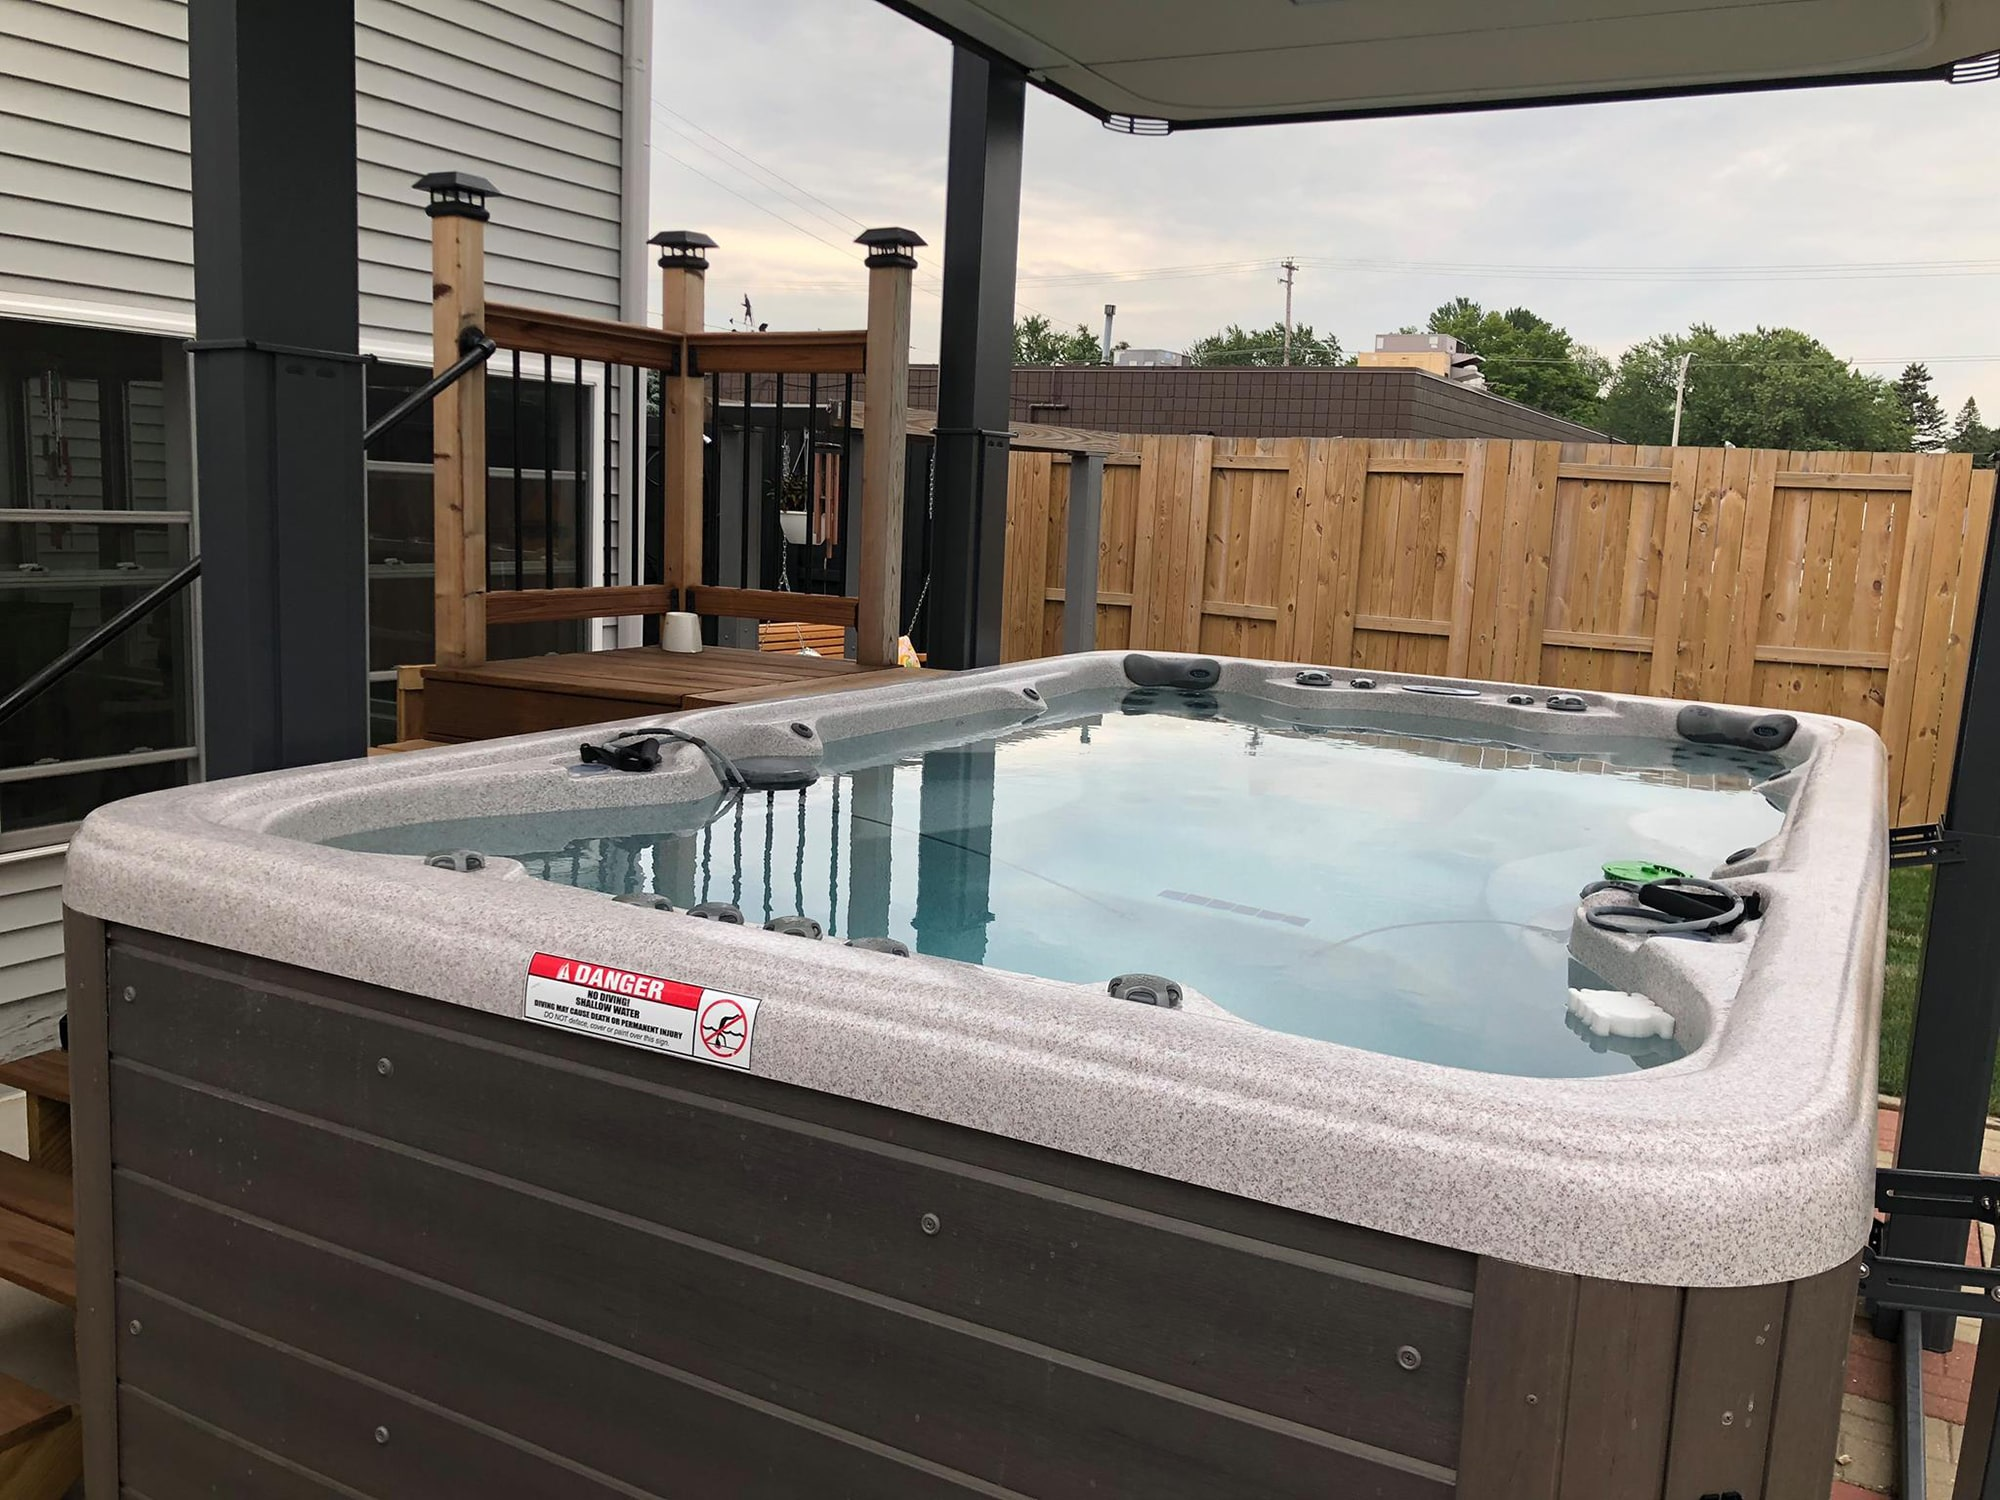 Vita Spa Hot Tub in Sarasota